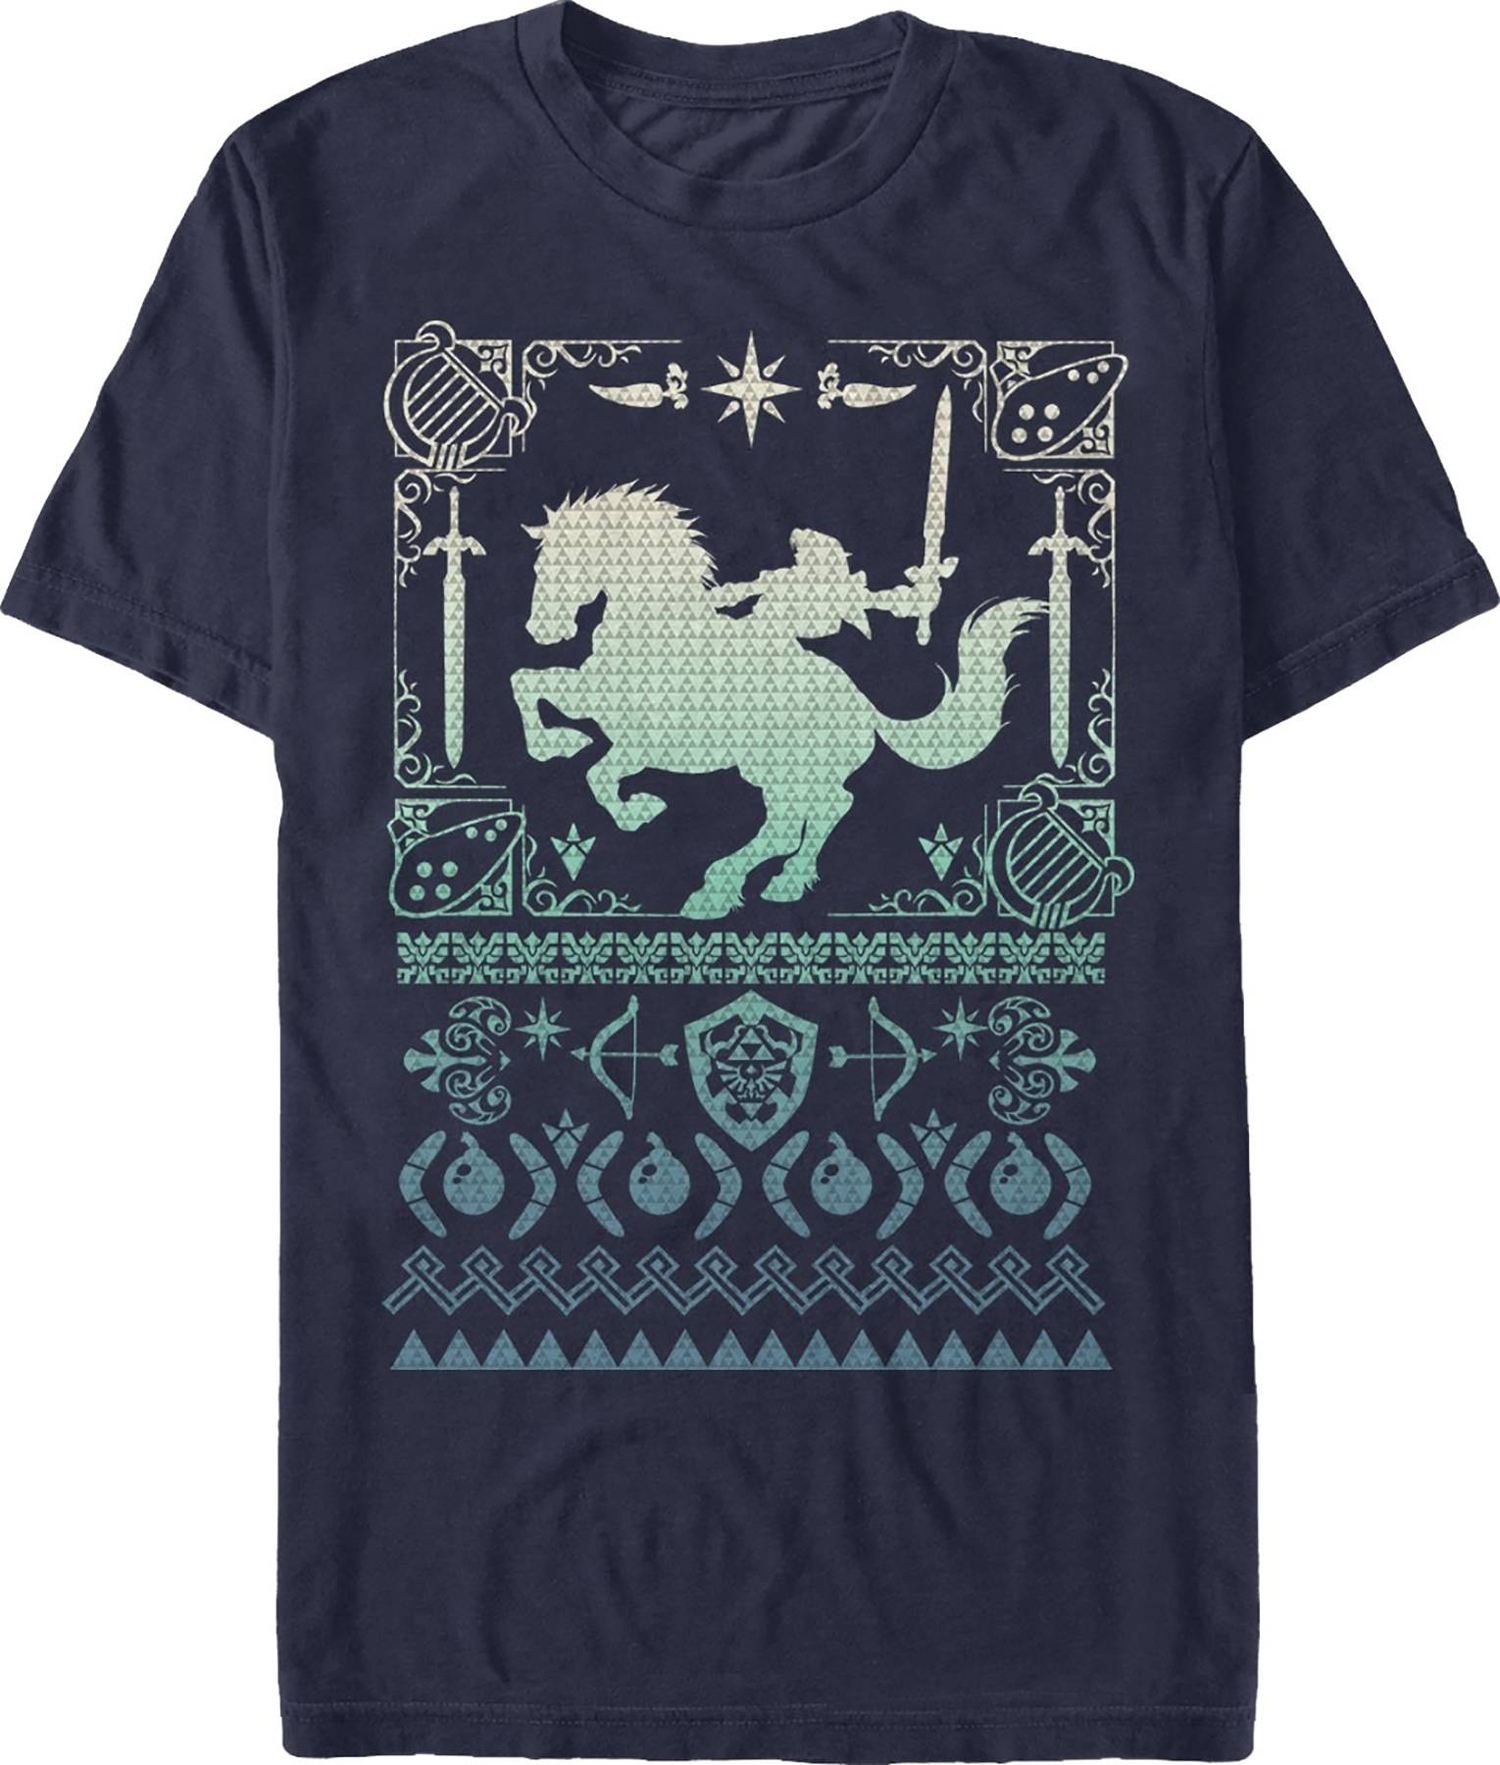 Legend of Zelda Silhouette Navy T-Shirt